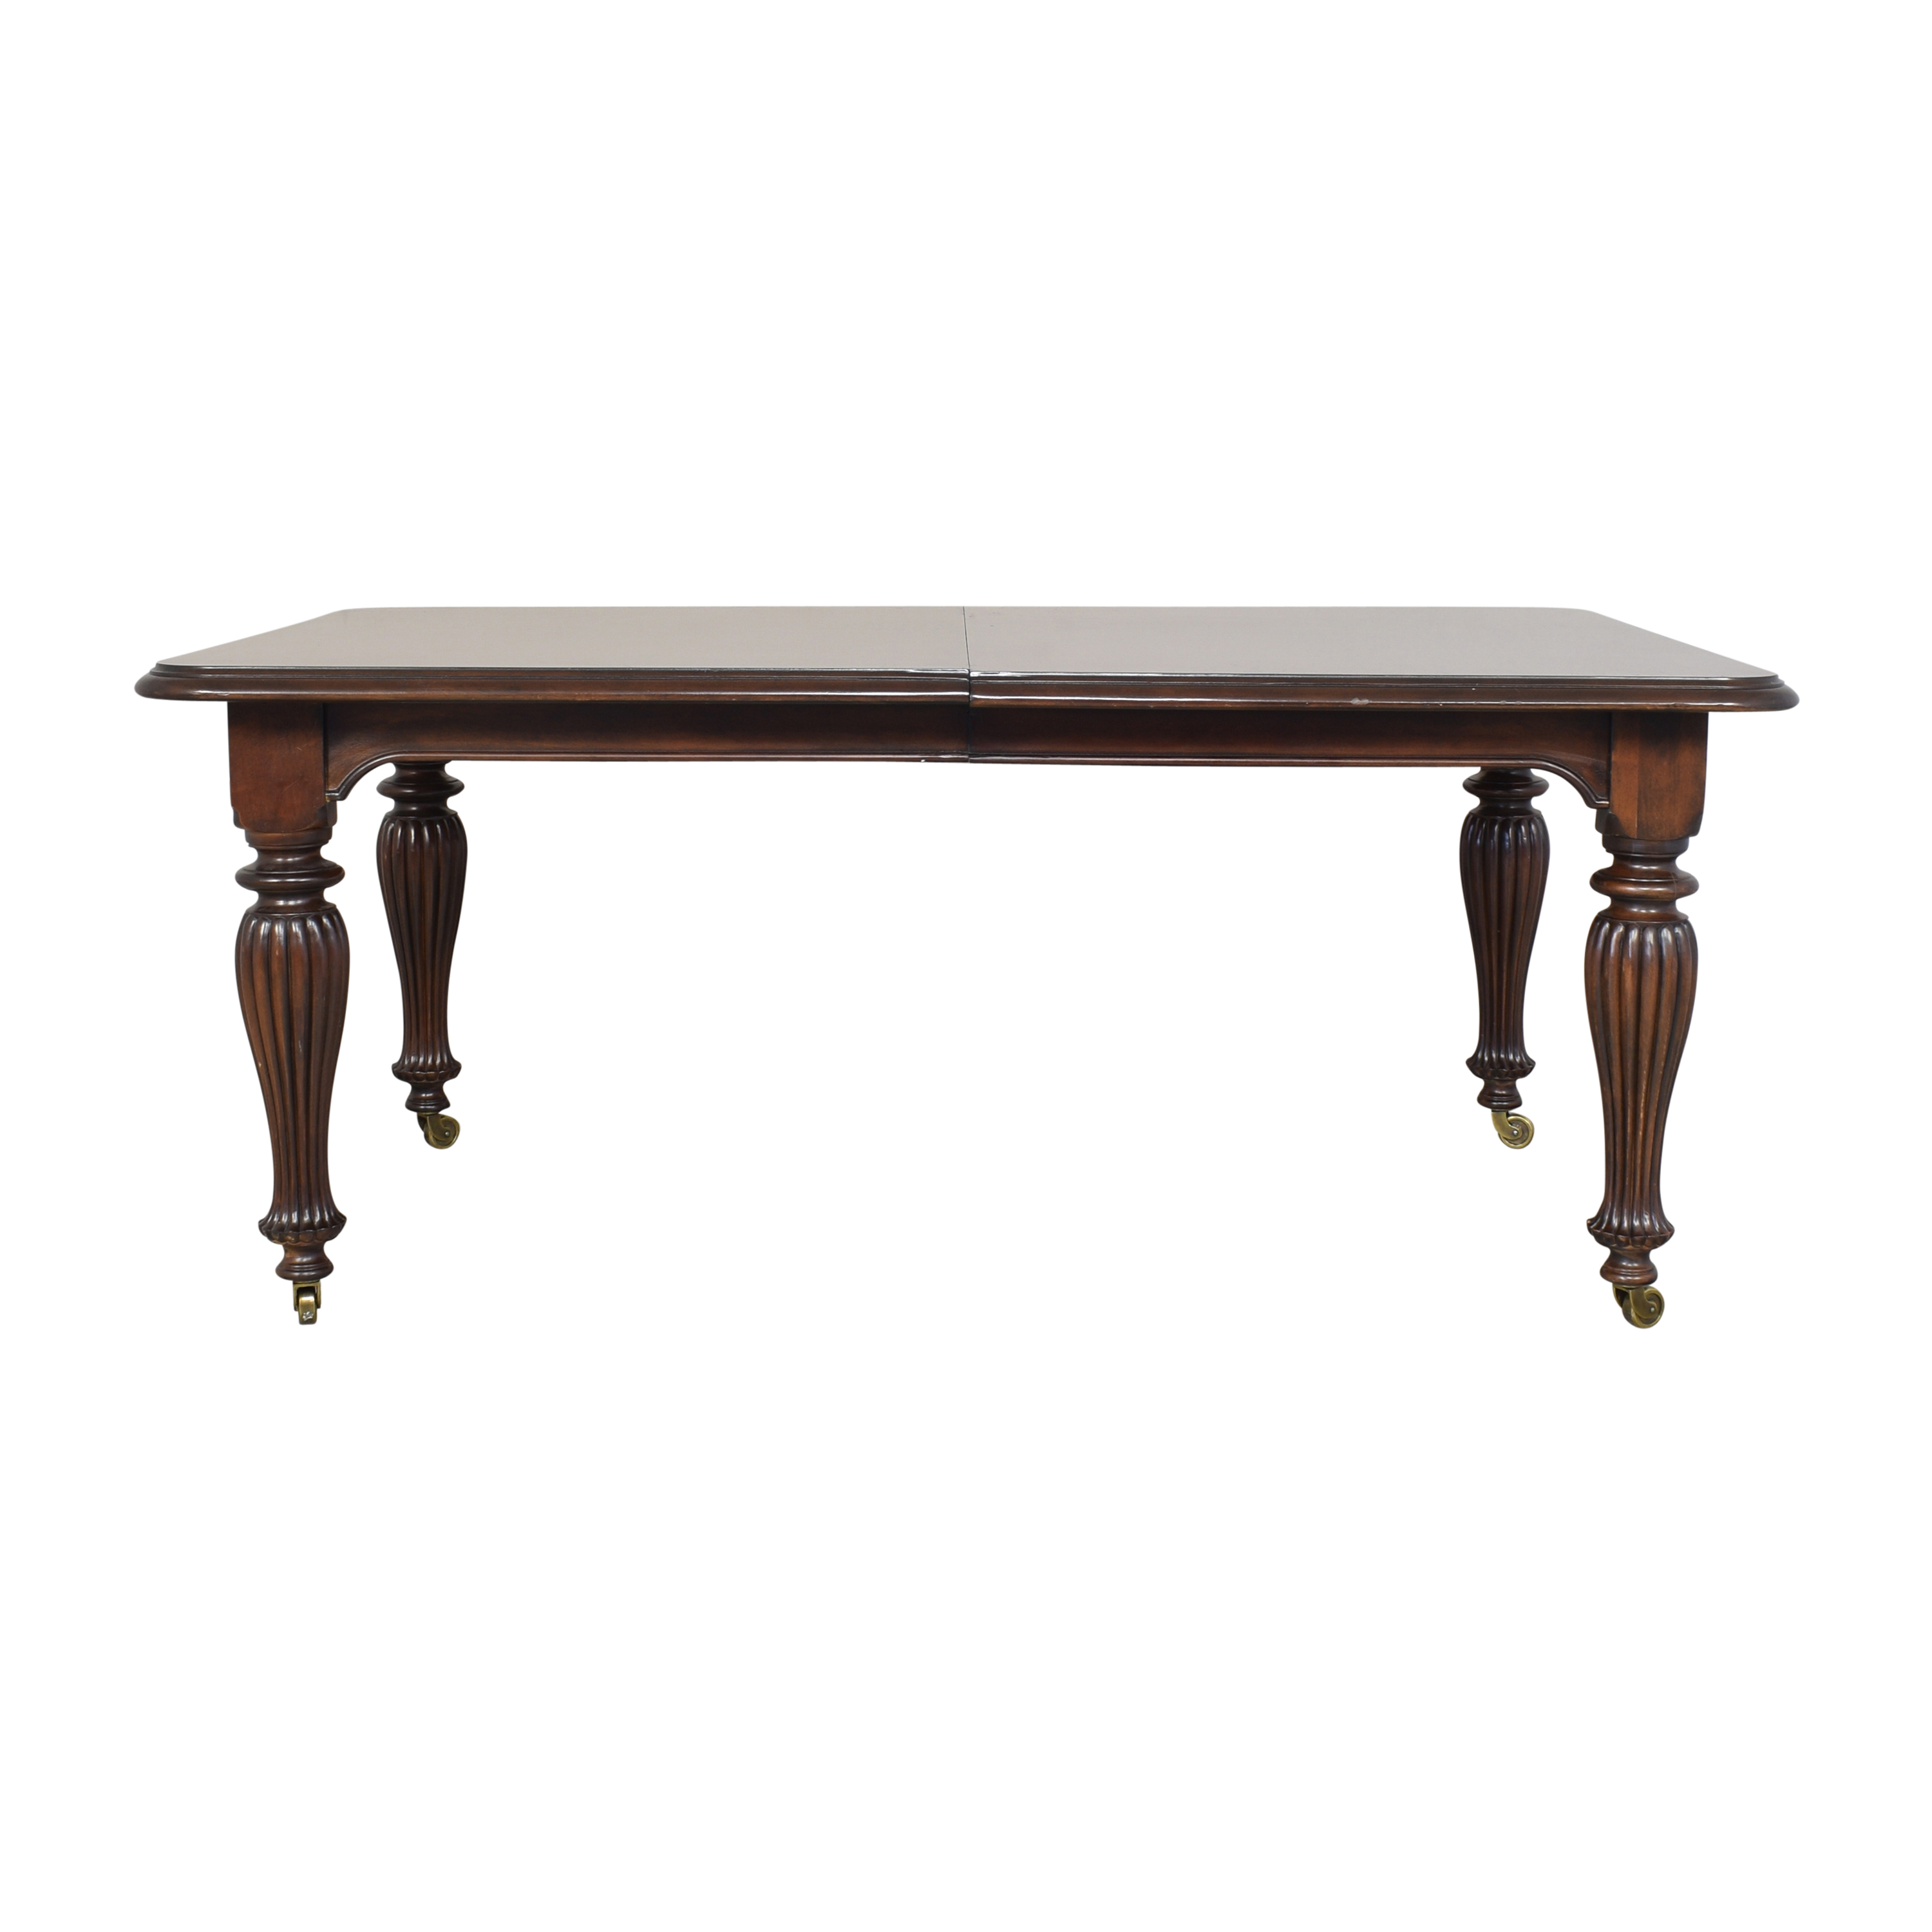 Ralph Lauren Home Ralph Lauren Home East Grand Dining Table Dinner Tables